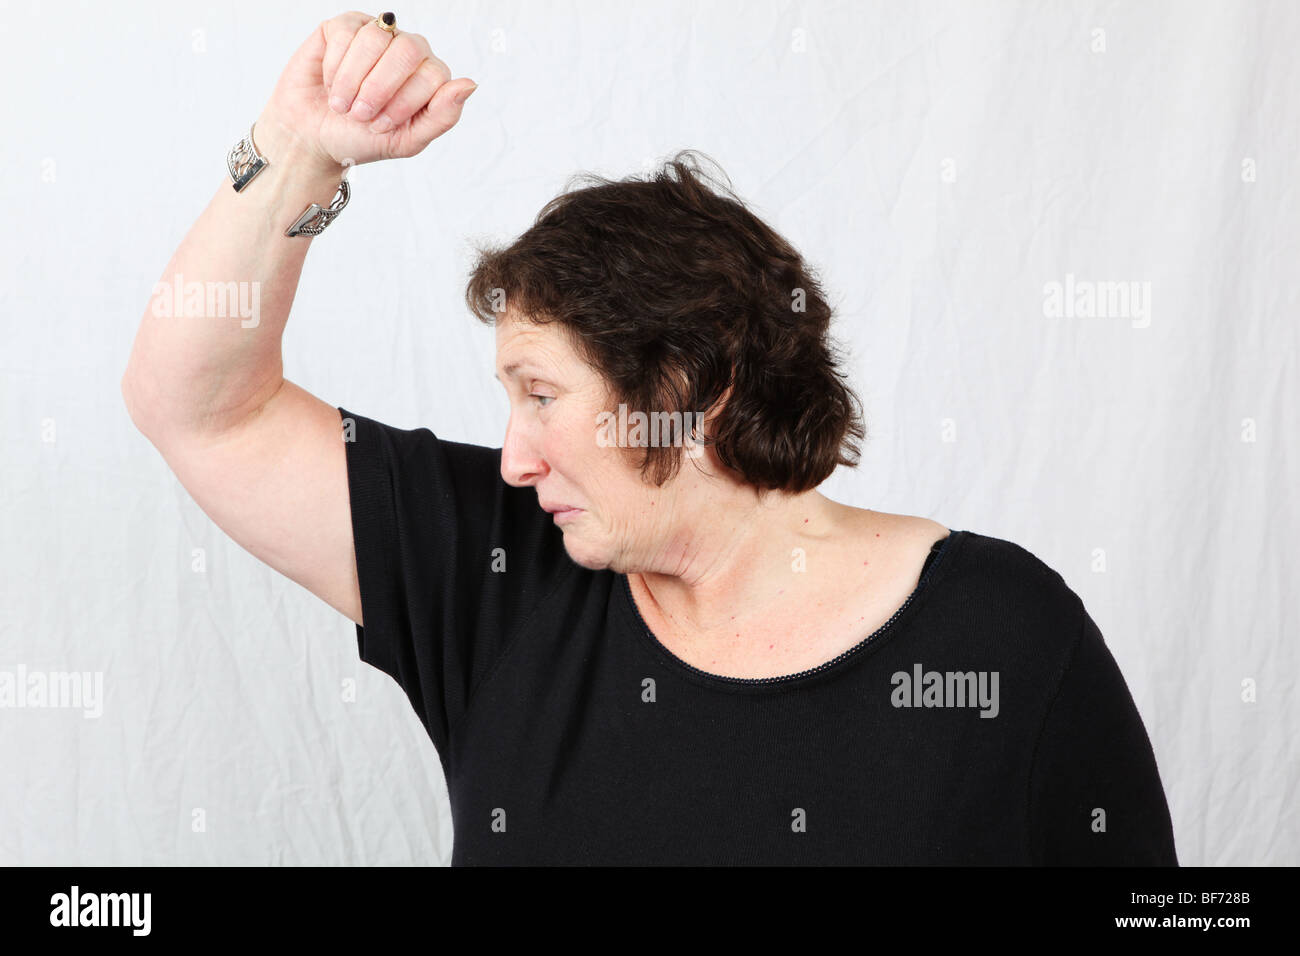 50s 60s woman smells armpit disgust smells strong under arm body odor odour BO unwashed unclean poor bad personal - Stock Image